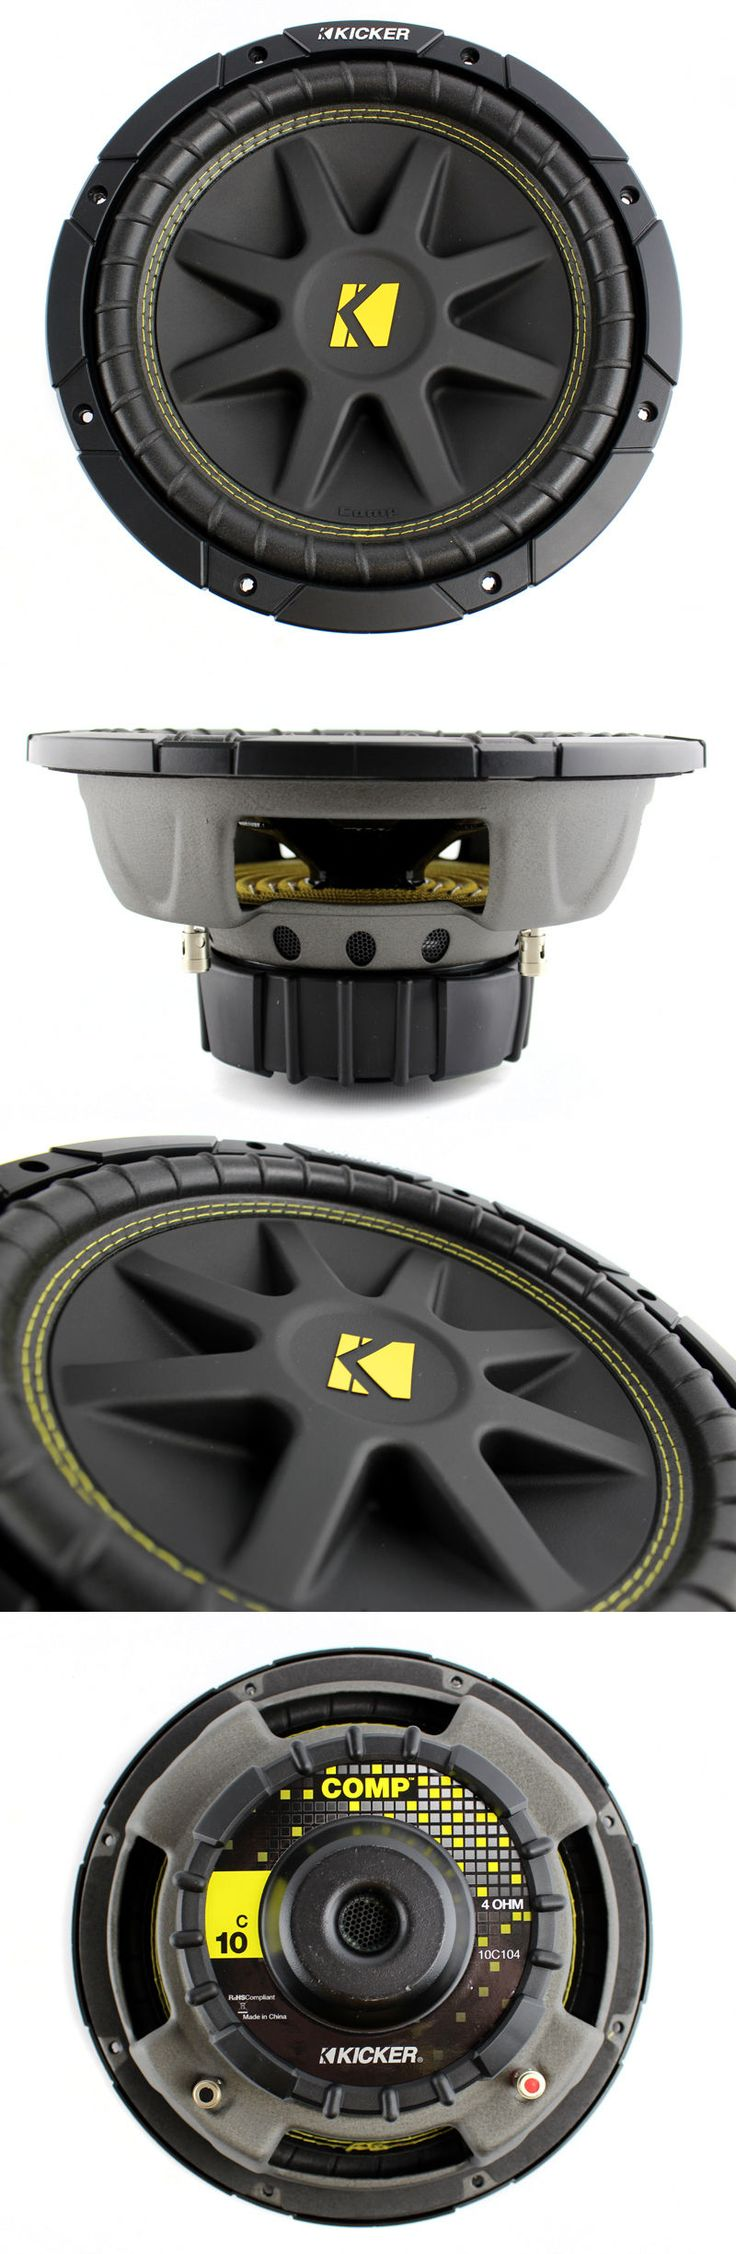 Car Subwoofers: Kicker C104 10 300W Comp 4-Ohm Car Audio Subwoofer Sub Woofer C10 | 10C104 BUY IT NOW ONLY: $63.95